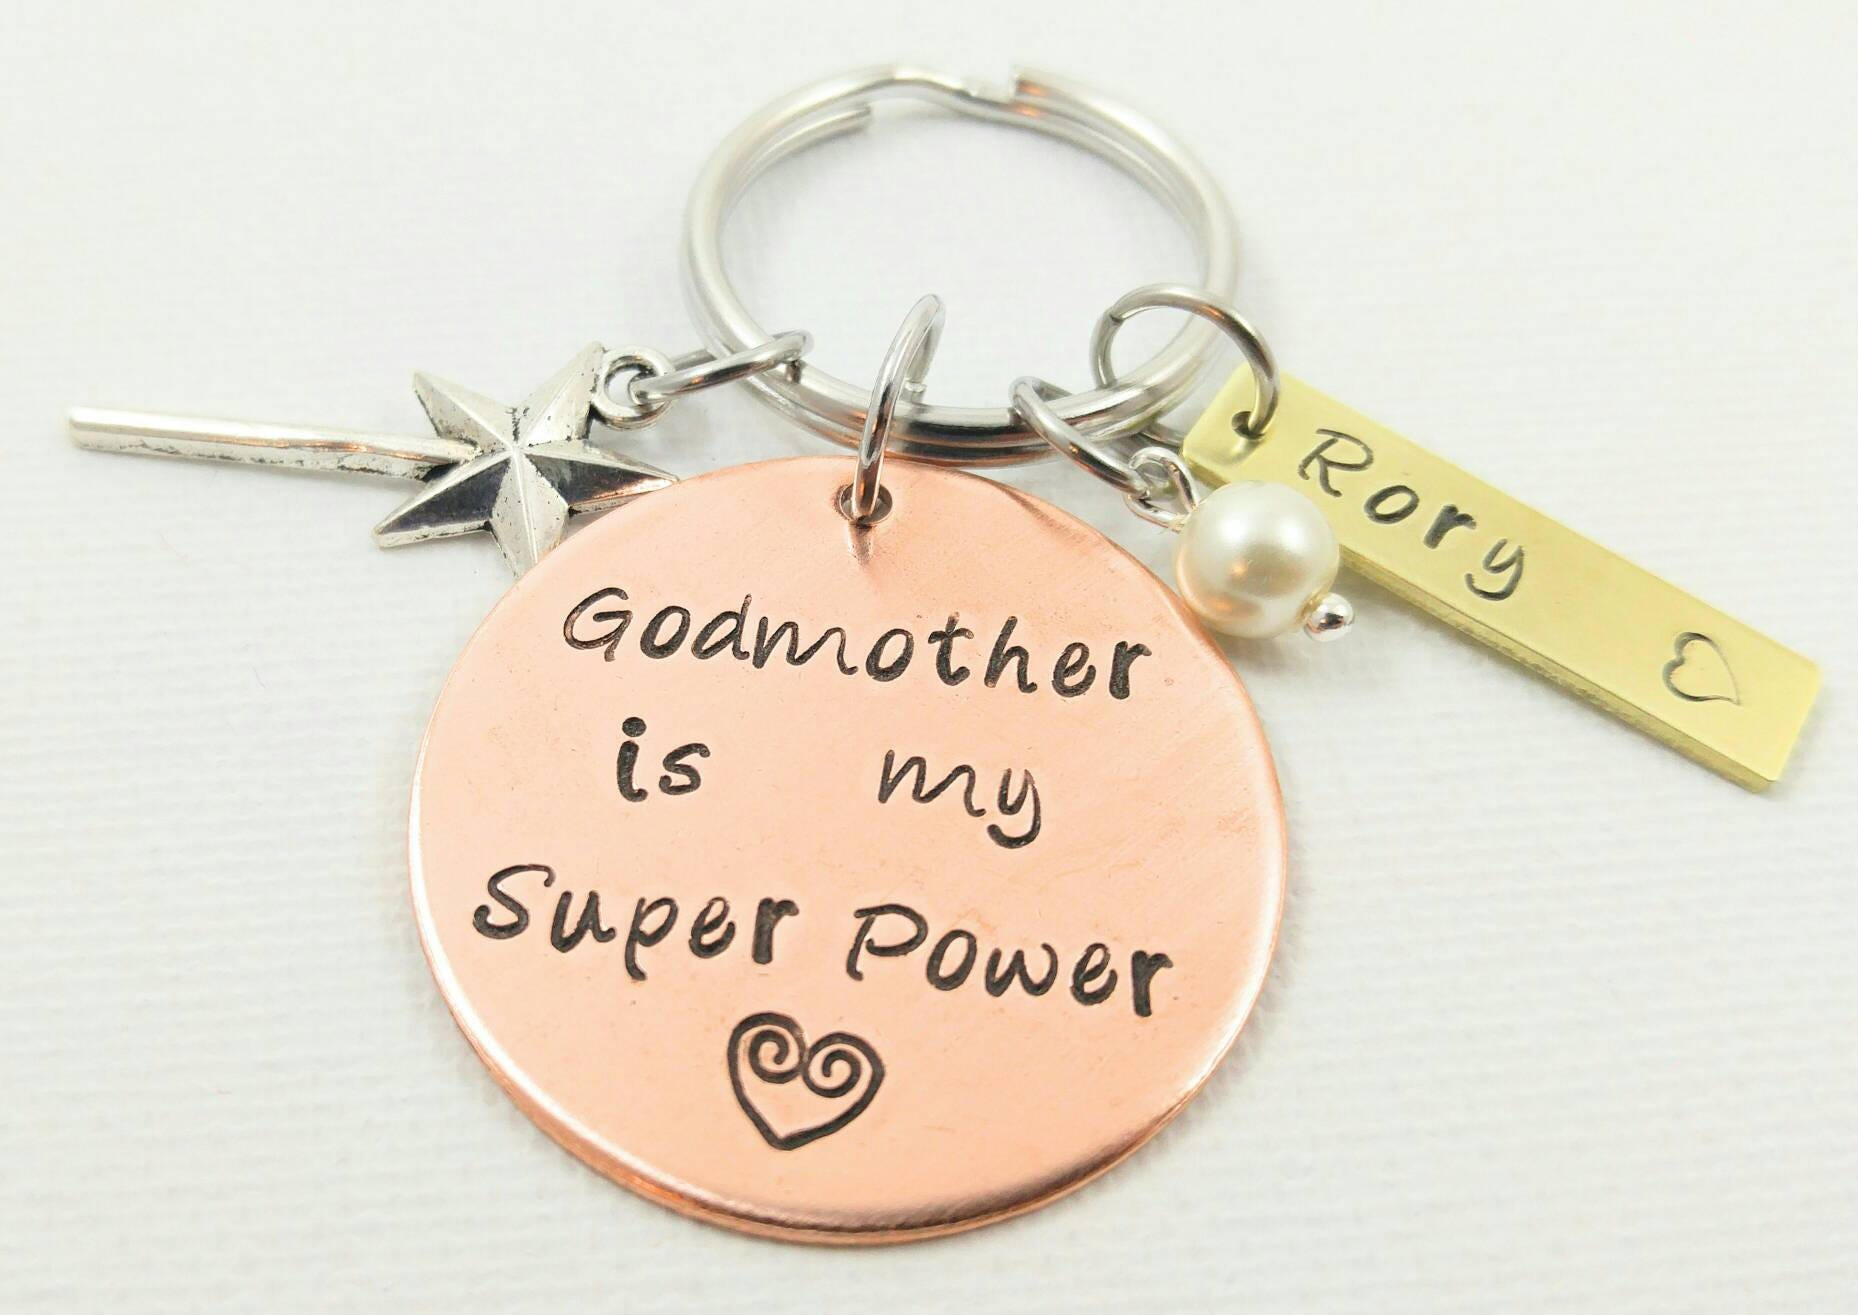 Godparent Keychain Gift For Godparents Gift For: Godmother Keychain Godmother Gift Godmother Jewelry Best